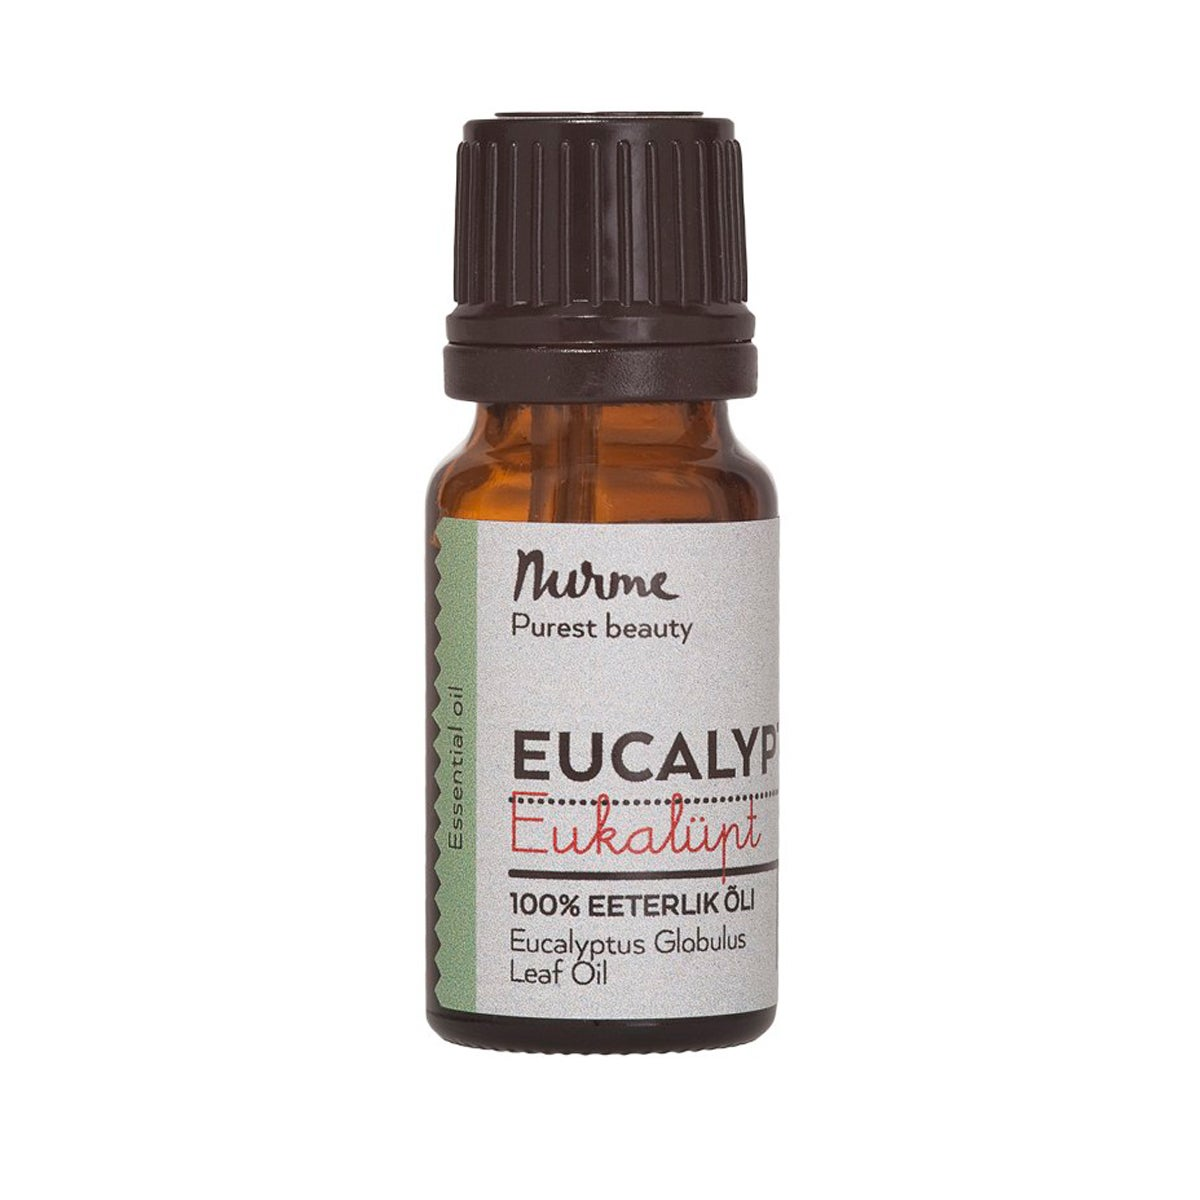 Nurme Eucalyptus Essential Oil